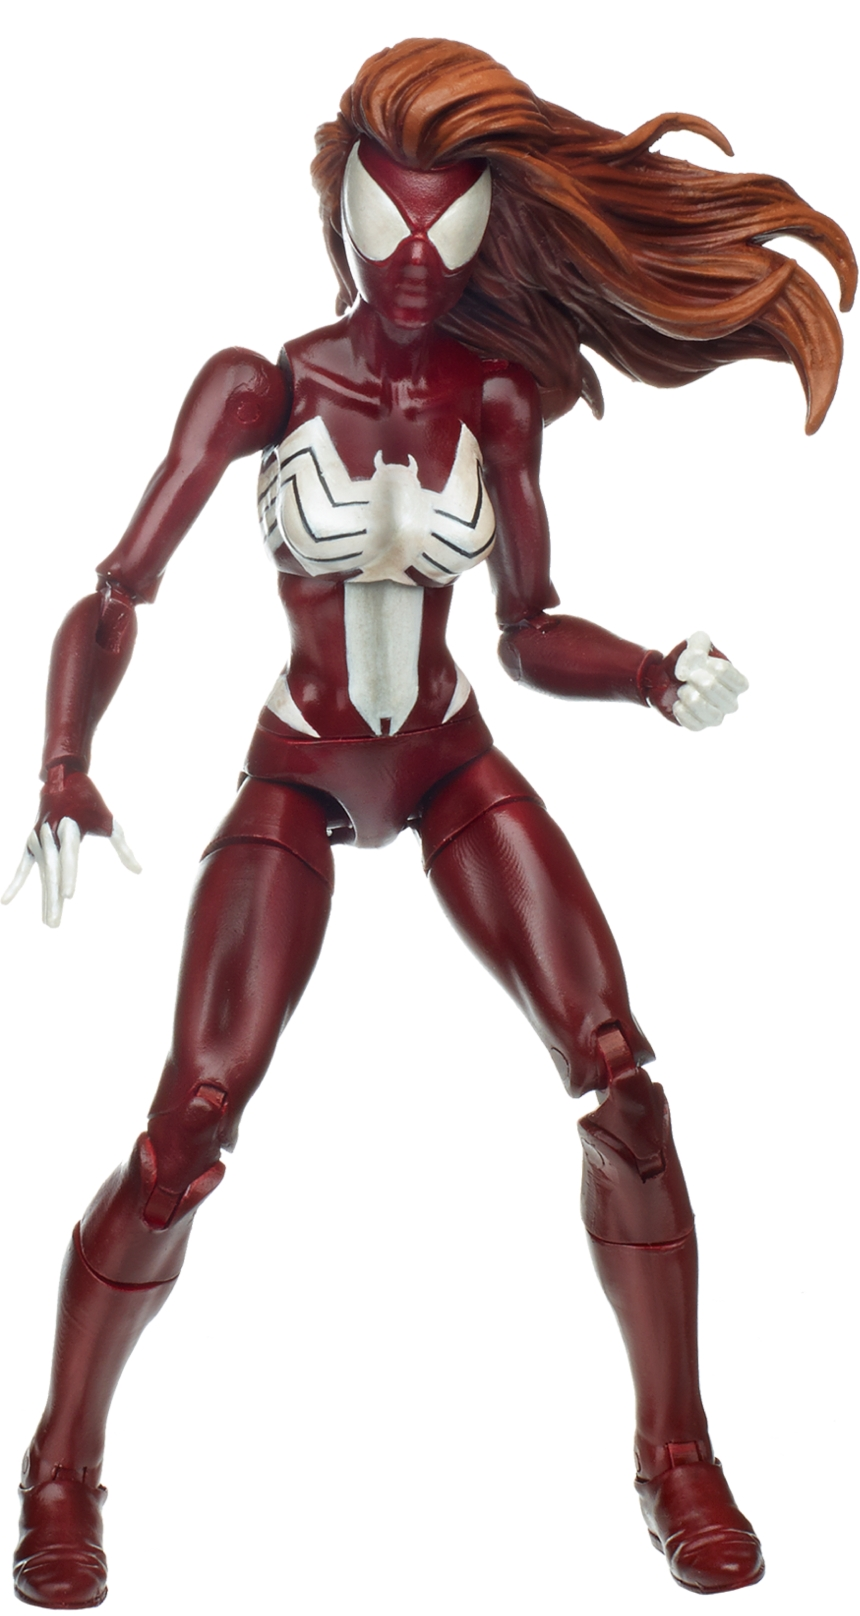 SpiderManLegends-wave1-Ultimate Spider-Girl